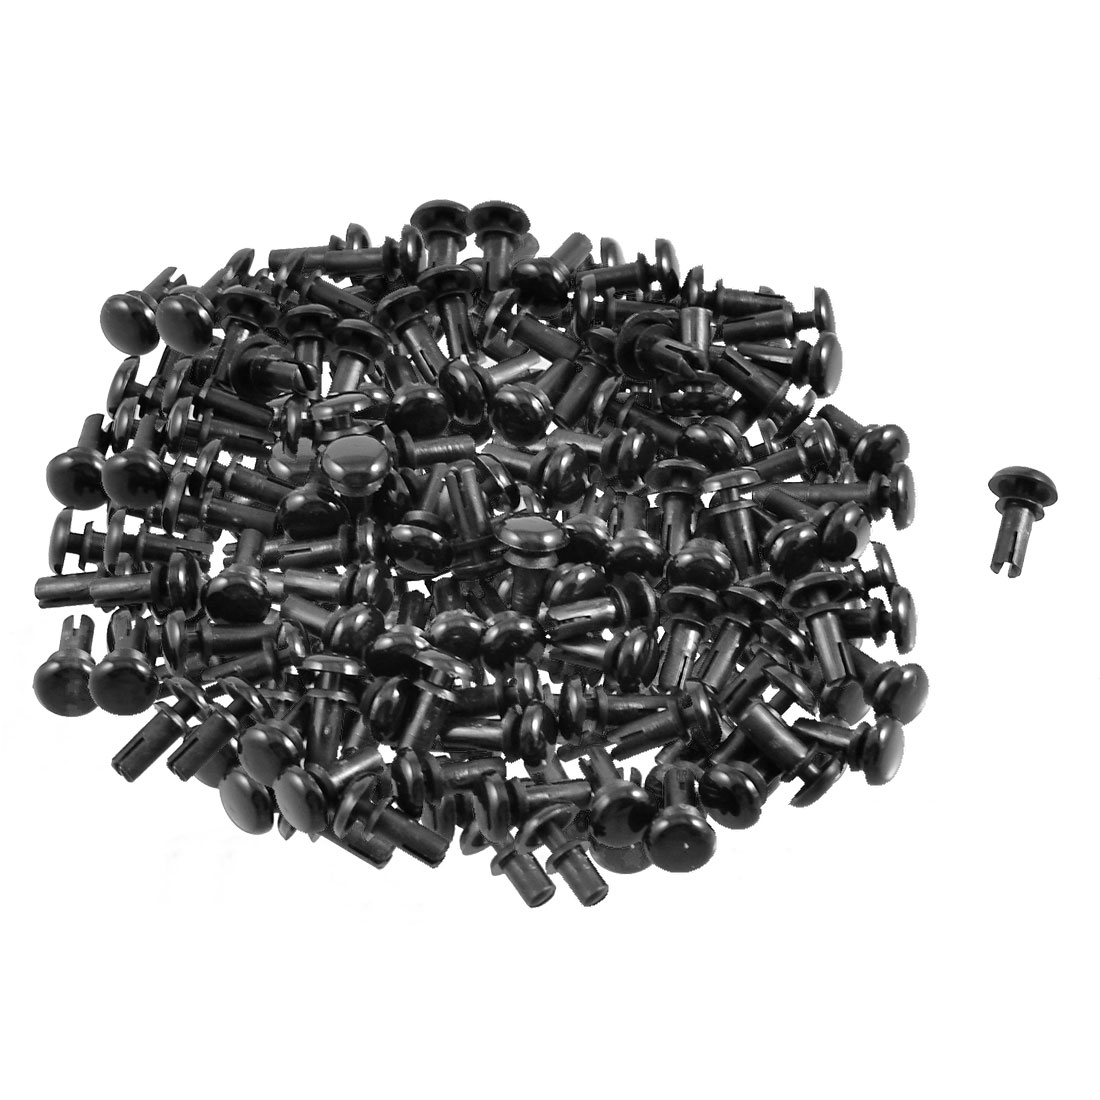 300 Pcs PCB 6.5mm Push in Height Nylon Clips Fasteners Rivets Black